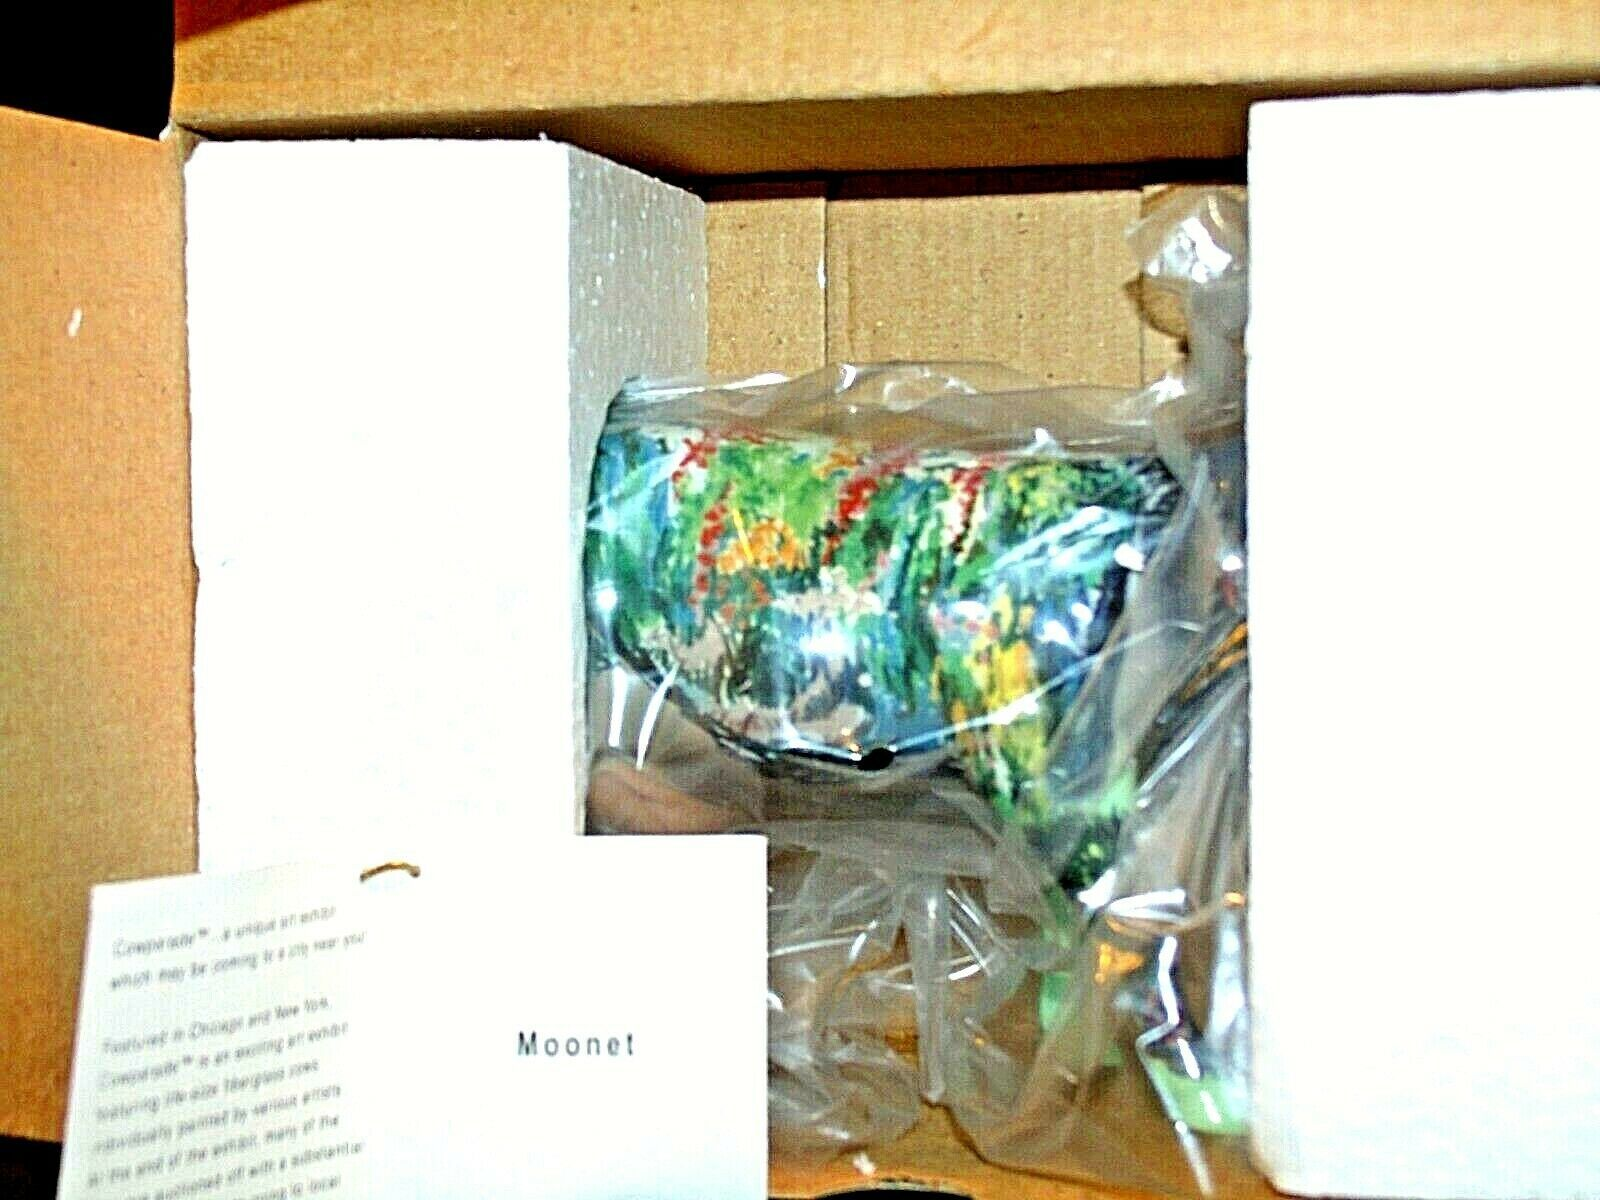 Cow Parade Moonet Item # 9168 Westland Giftware AA-191815 Collectible